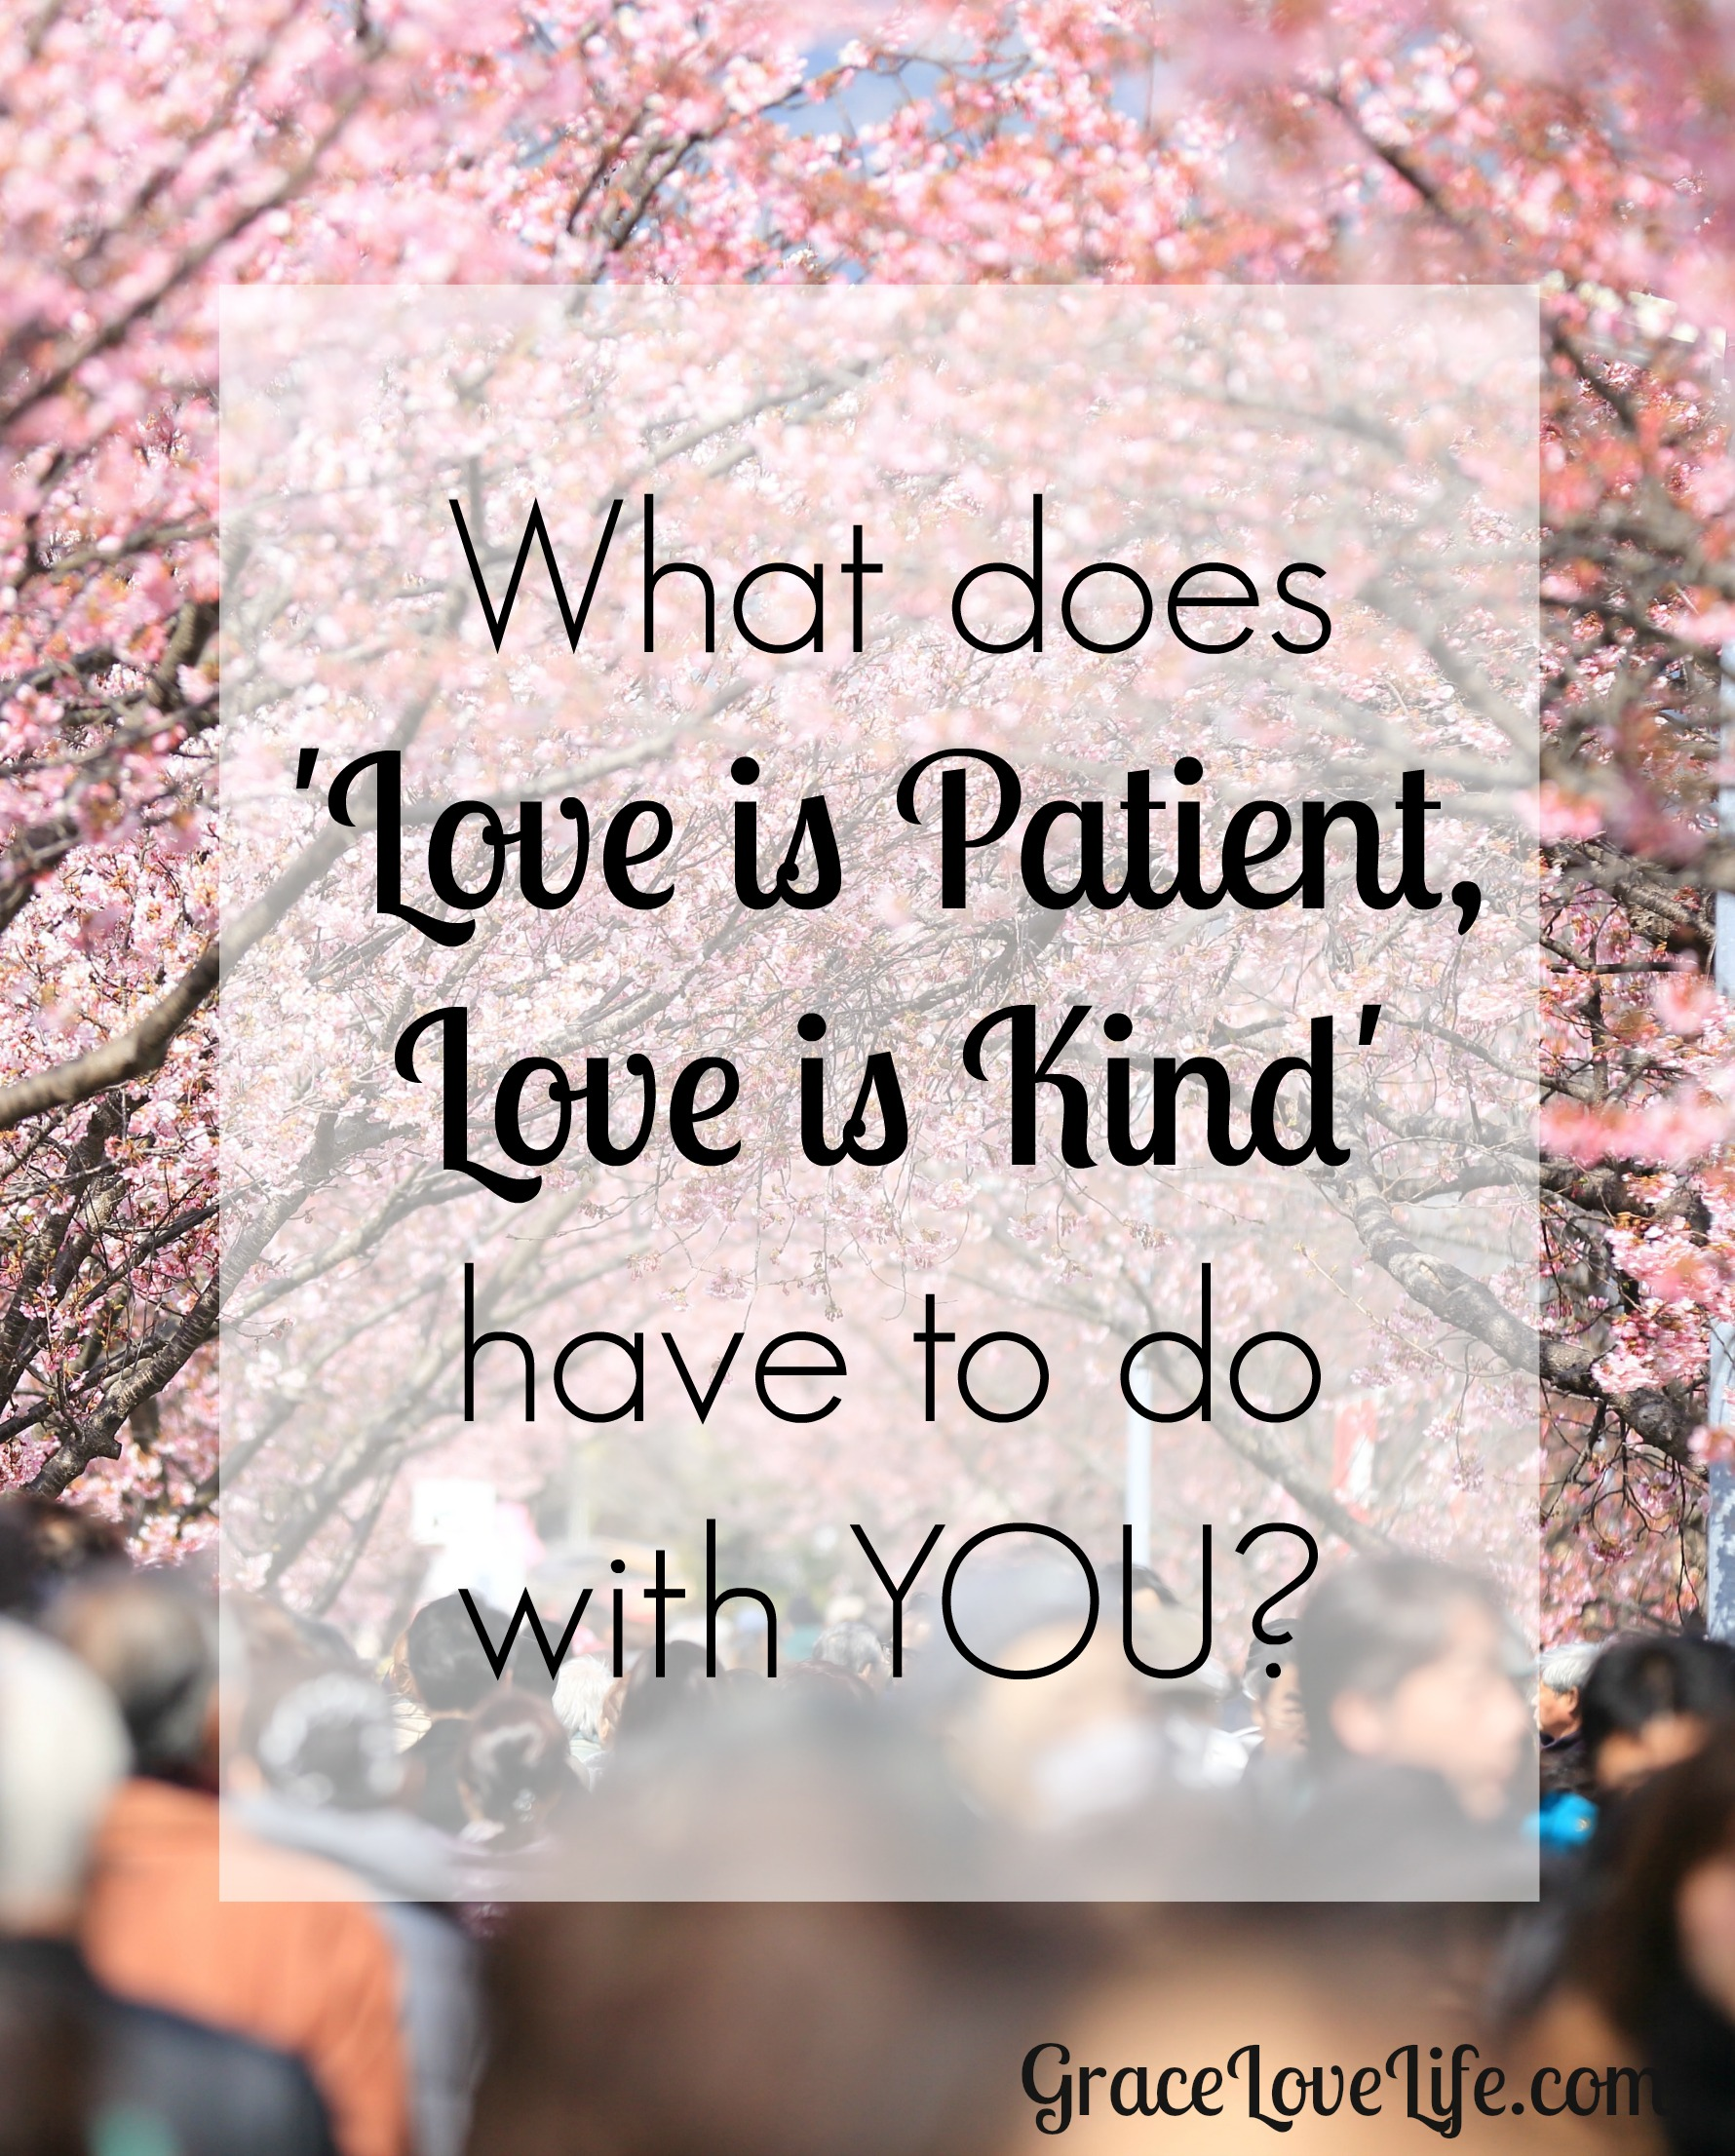 Love Is Patient Quote What Does 'love Is Patient Love Is Kind' Have To Do With You